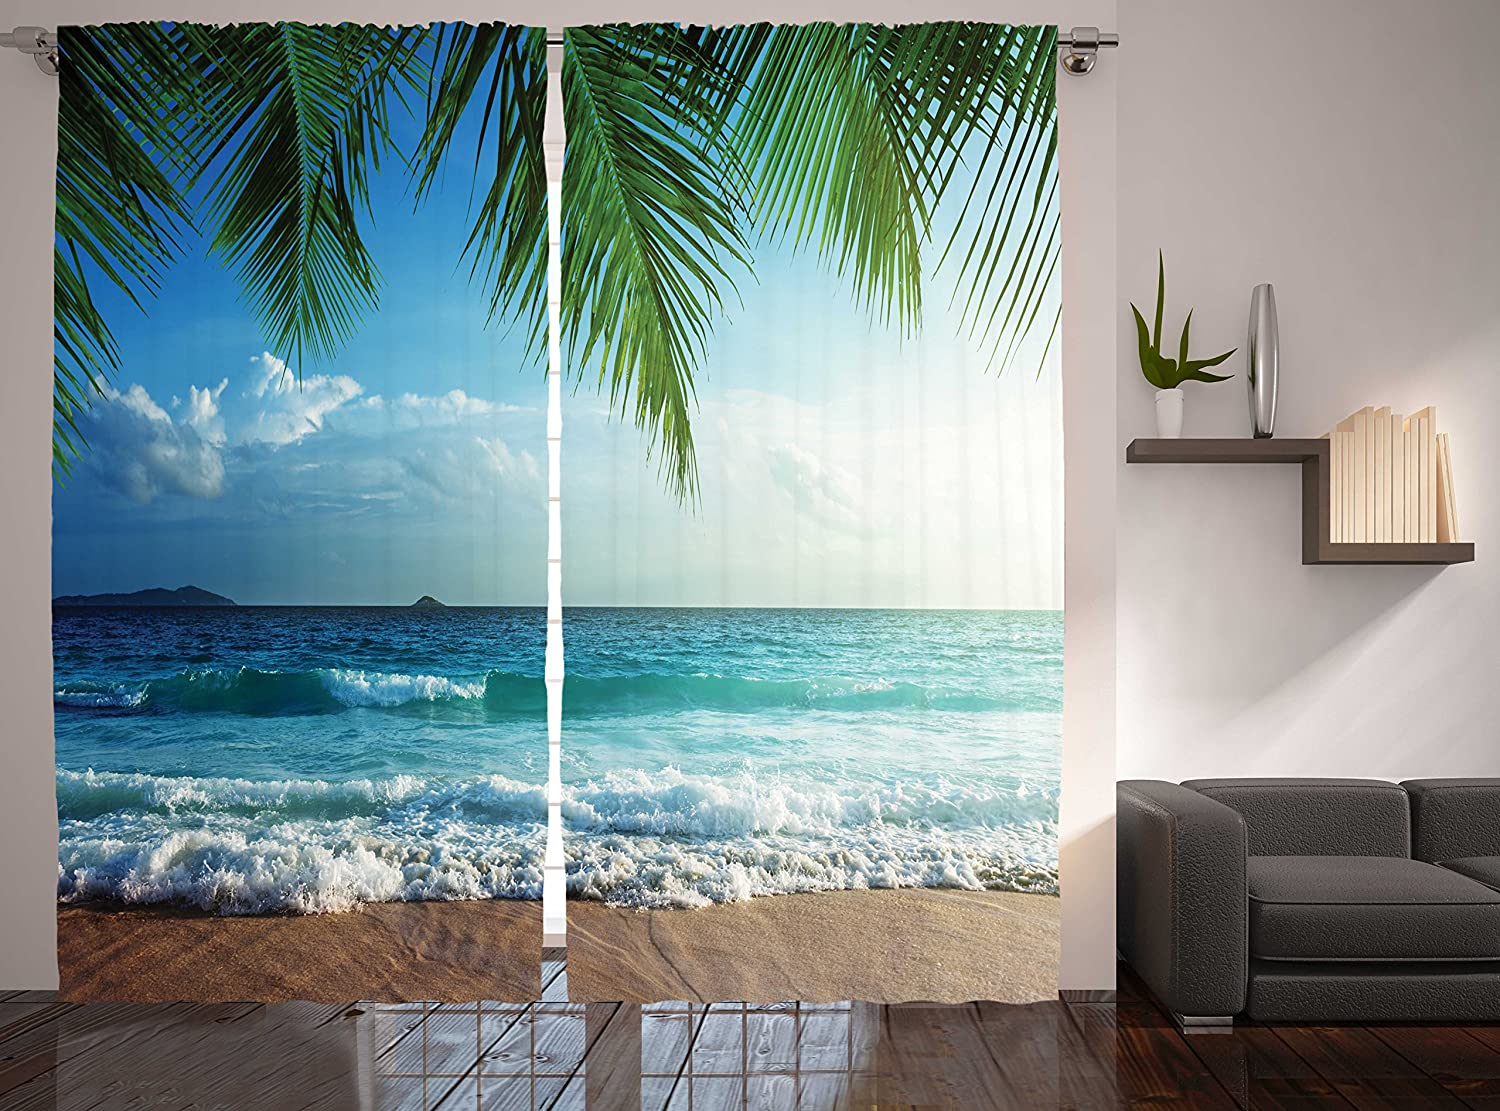 Ambesonne Curtains for Living Room Bedroom, Nautical Maritime Palms Trees Ocean Decorations for Work Tropical Island Beach Seashore Water Waves 2 Panel Window Coverings Drapes, Blue Green Turquoise